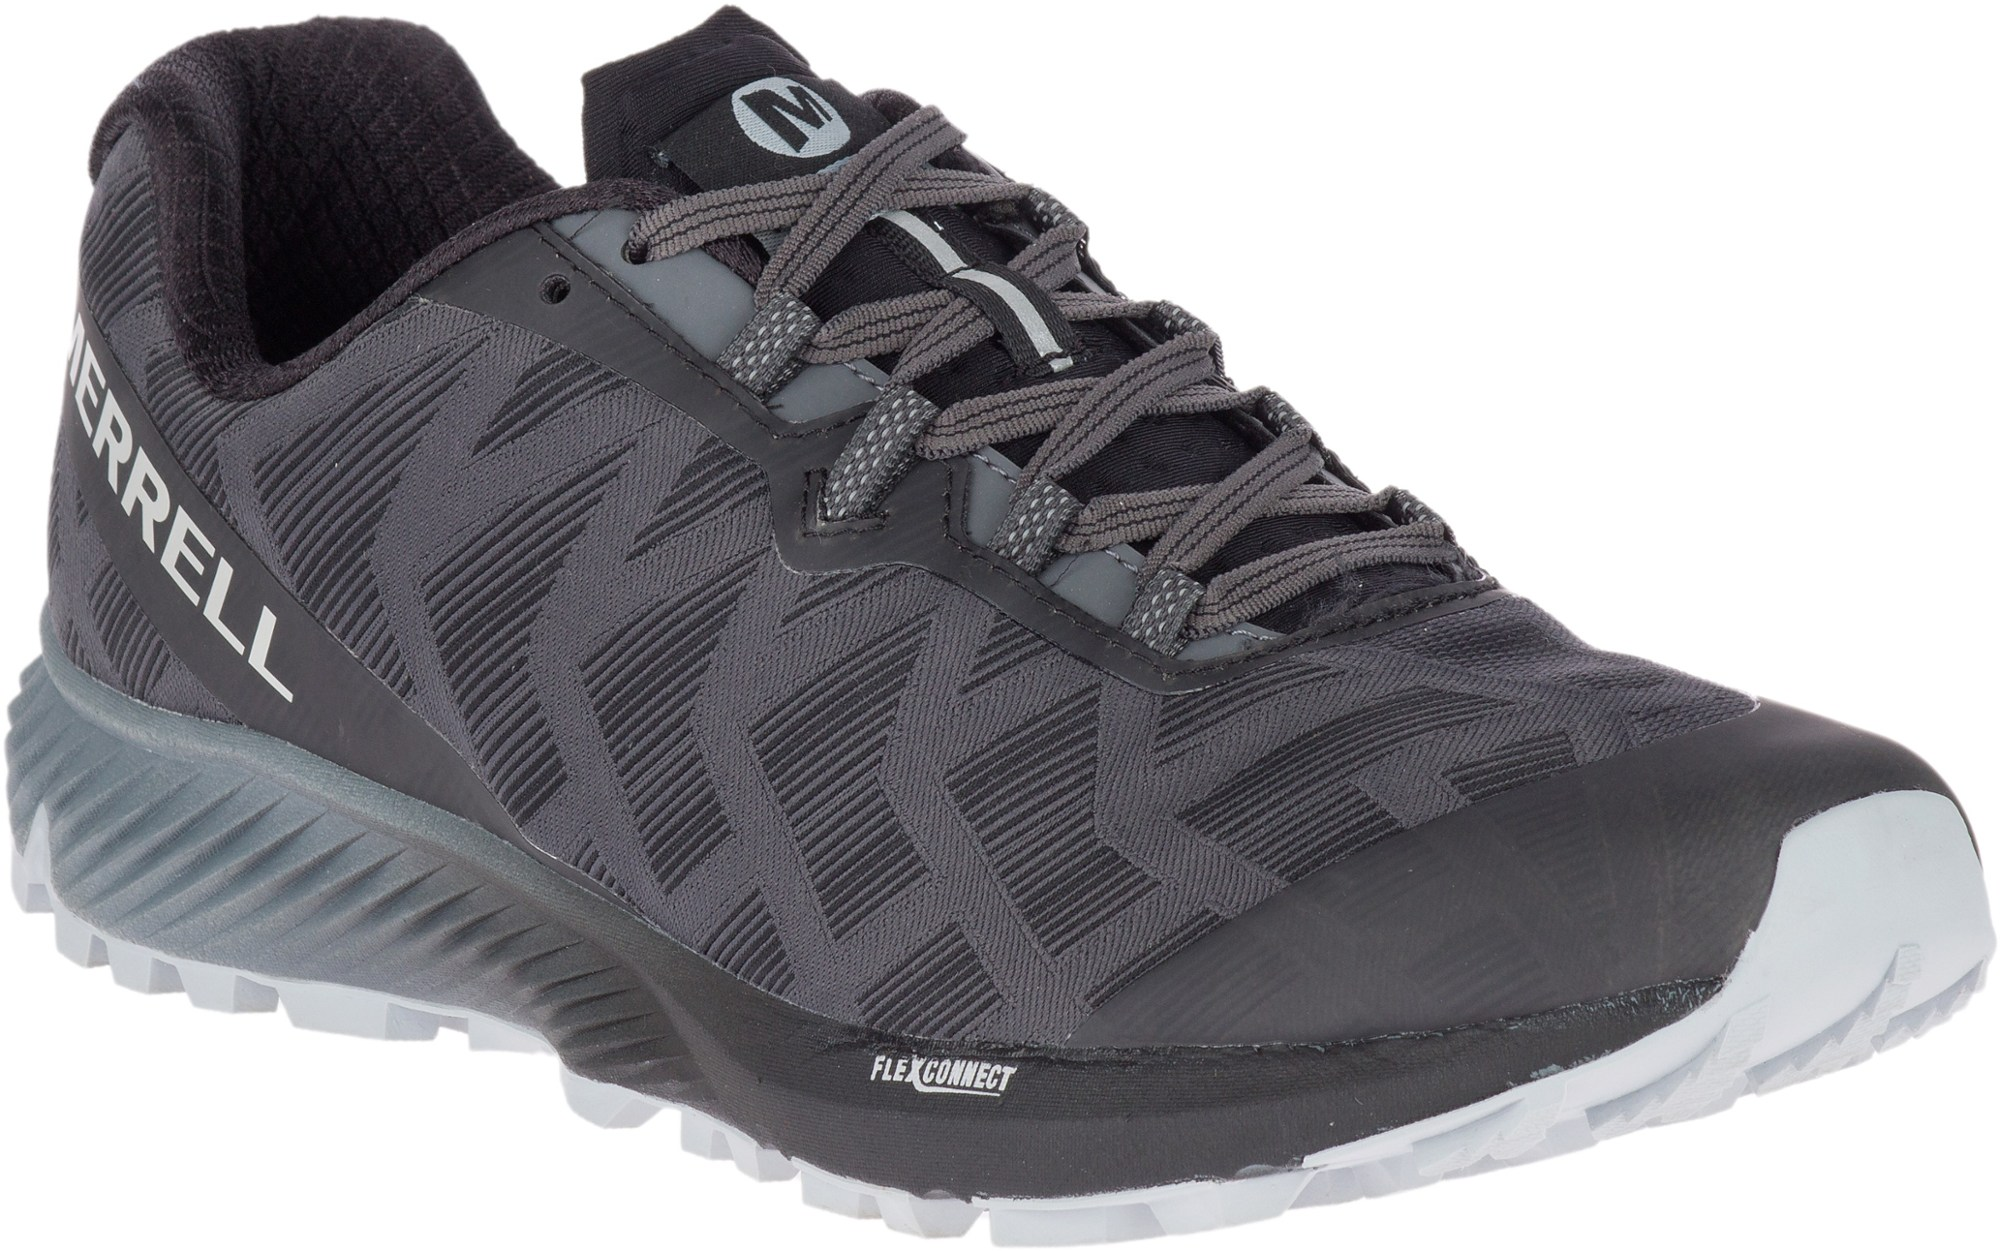 Merrell Agility Synthesis Flex Trail-Running Shoes - Men's